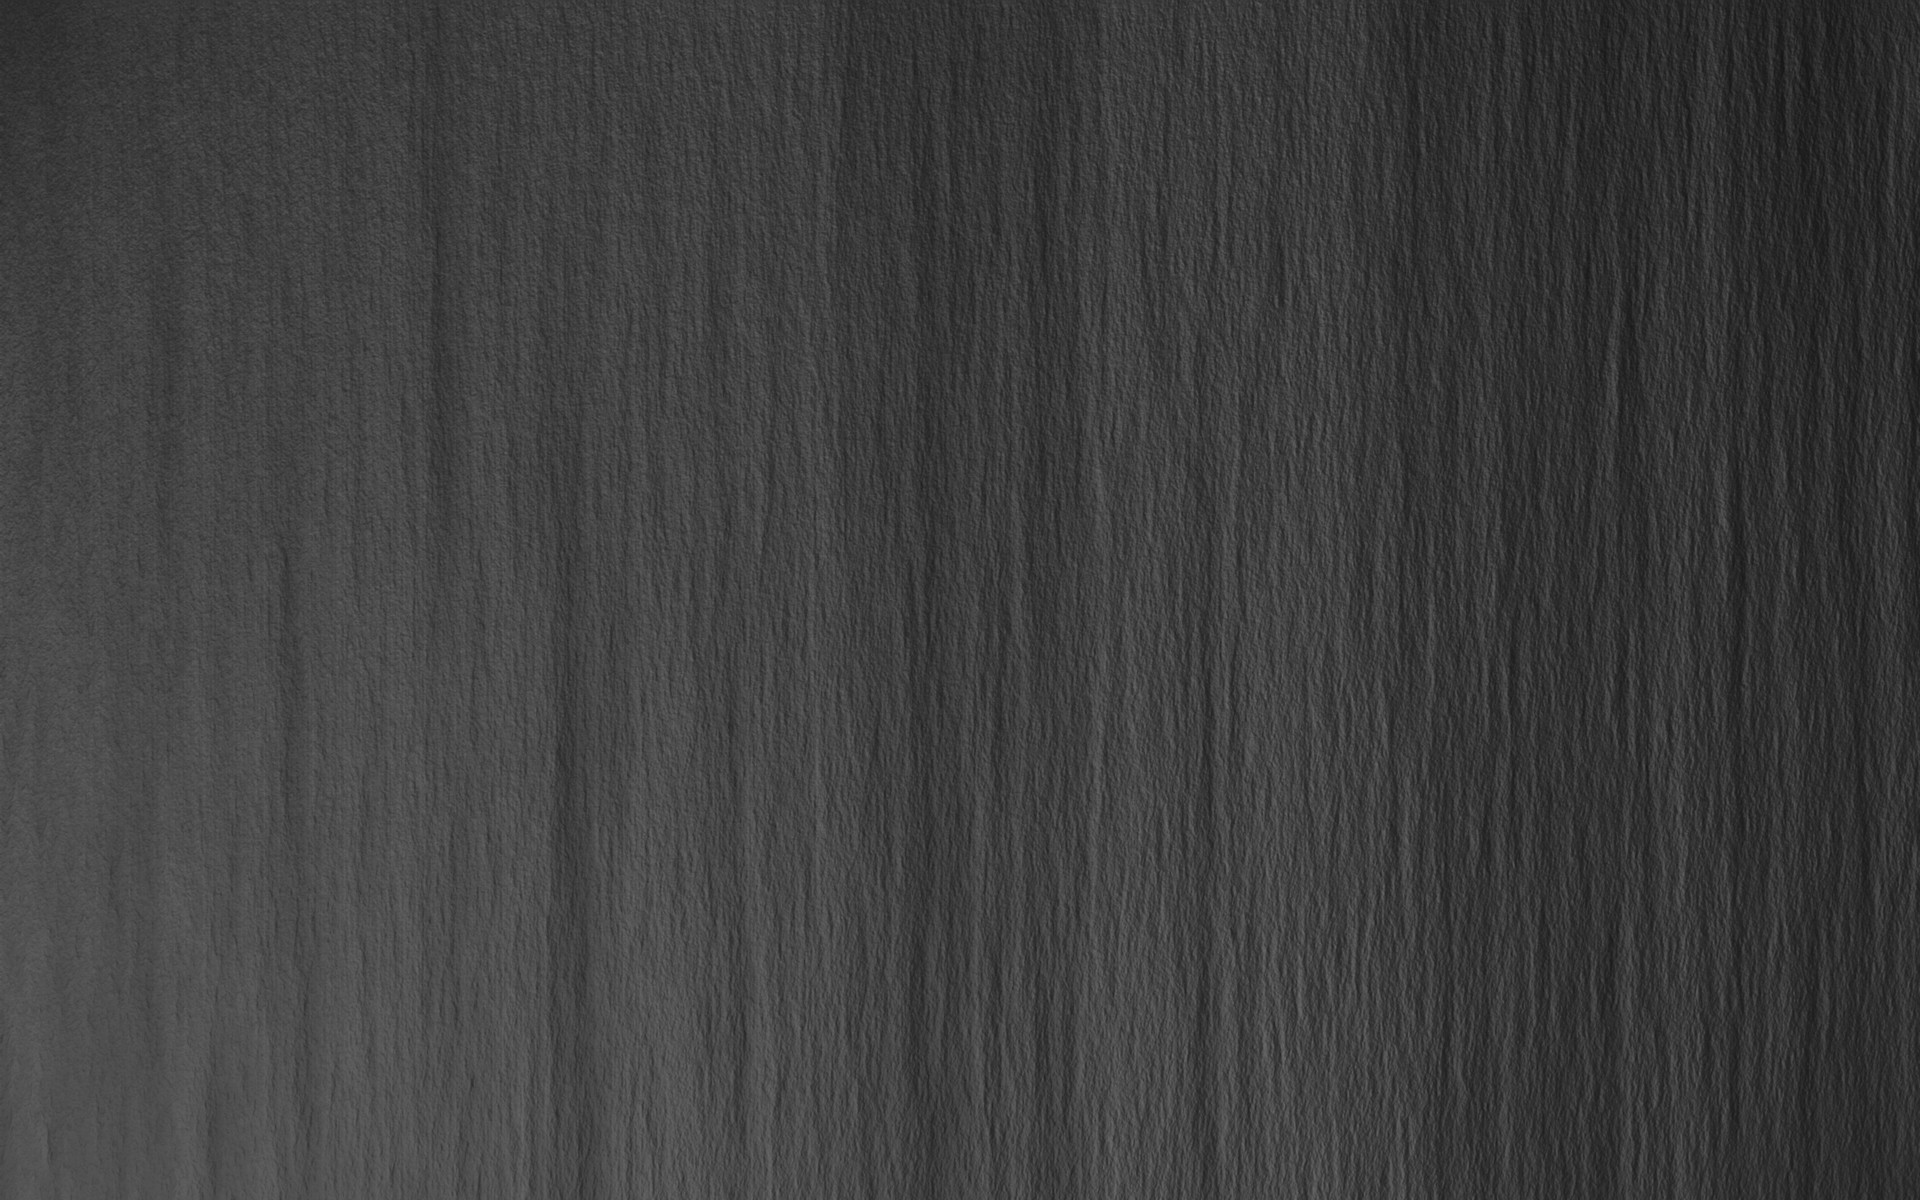 Grey hd wallpapers 67 images for Plain white wallpaper for walls